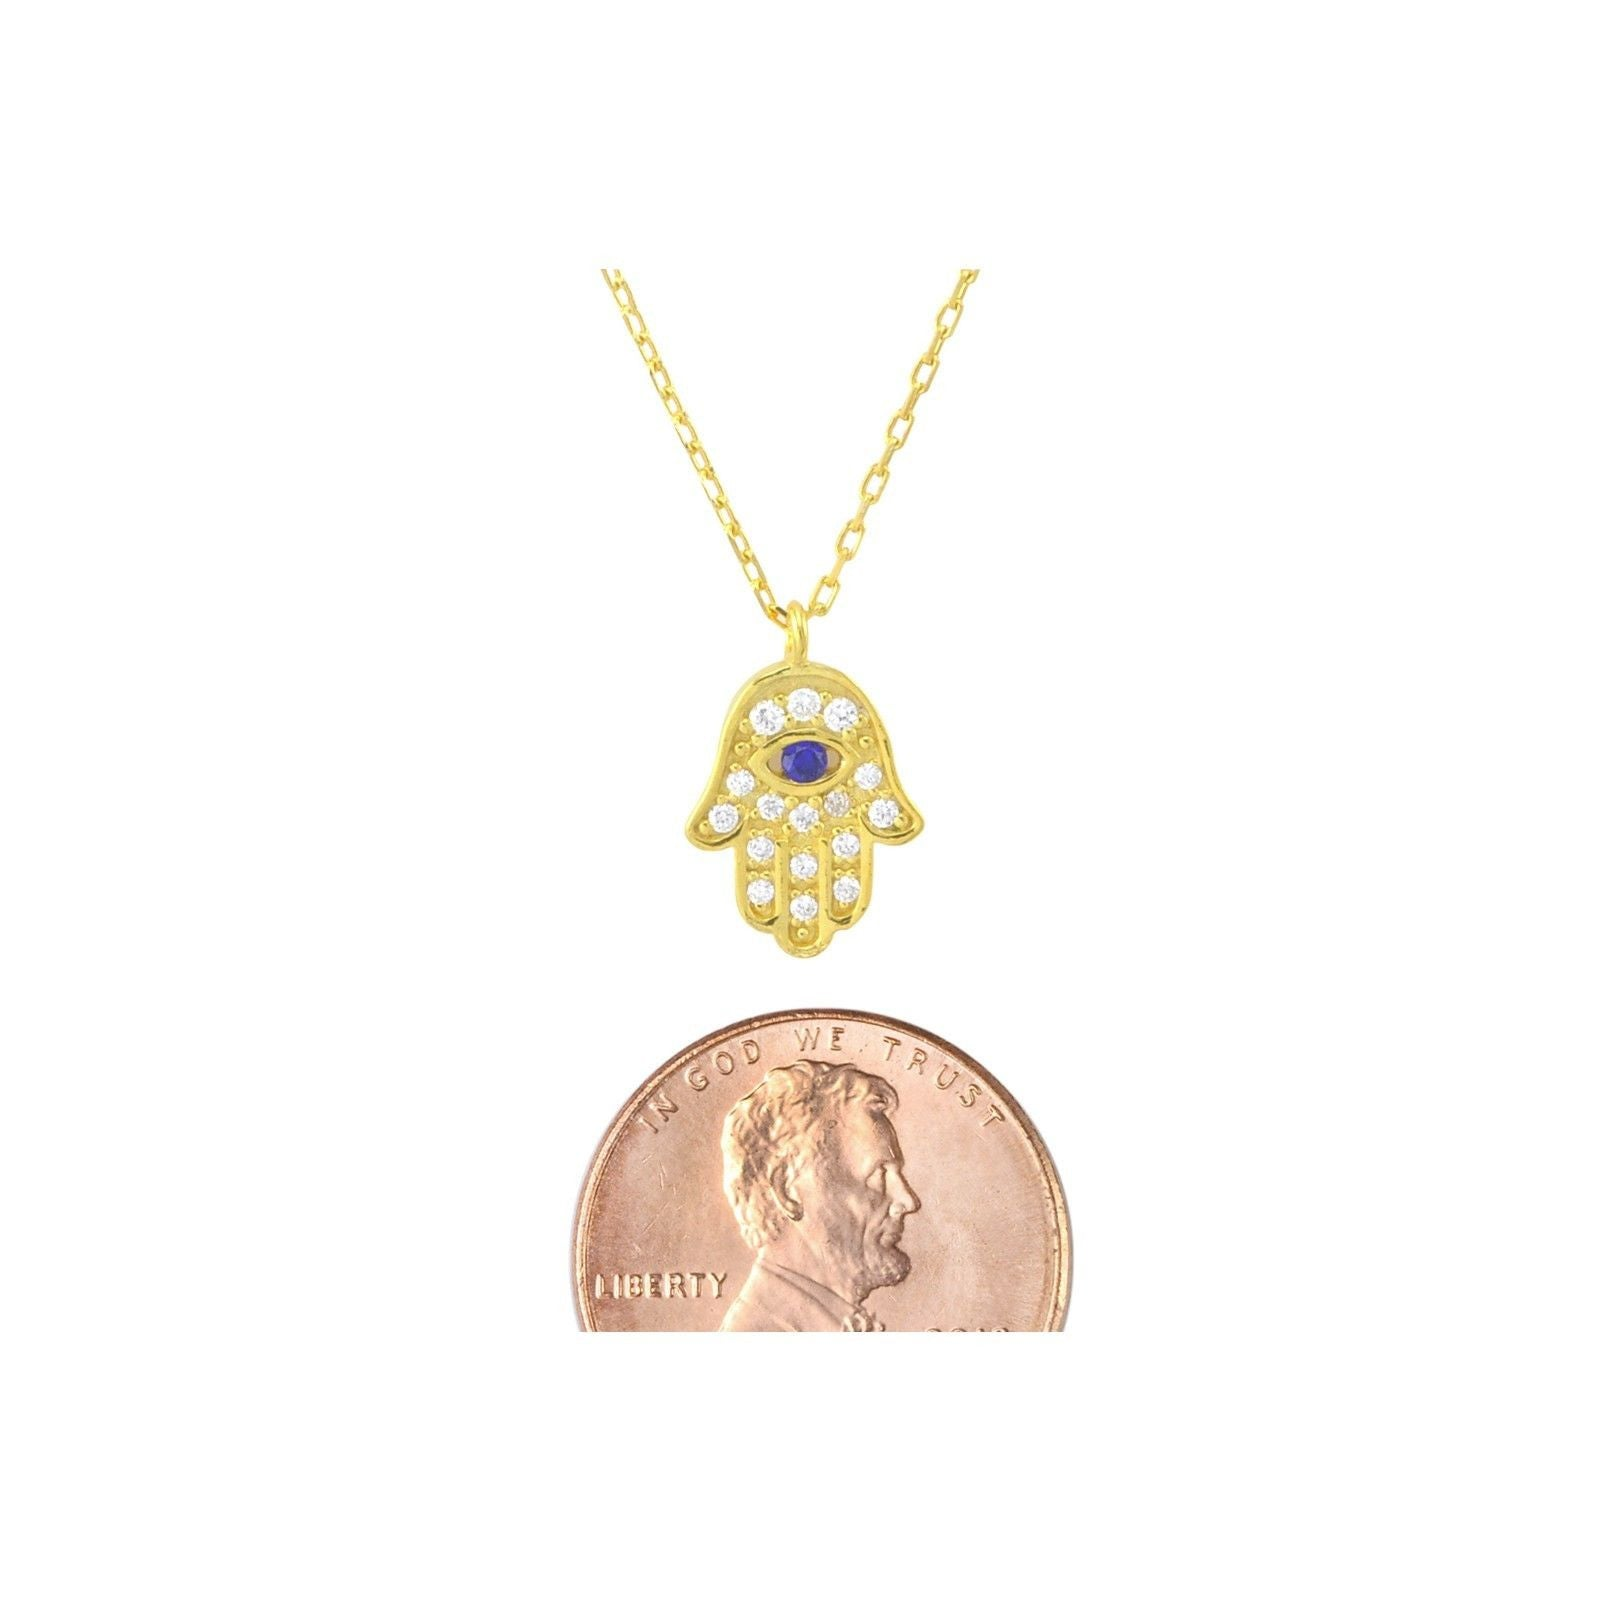 Hamsa necklace sterling silver yellow gold hand of god evil eye 17 hamsa necklace sterling silver yellow gold hand of god evil eye 17 chain aloadofball Choice Image